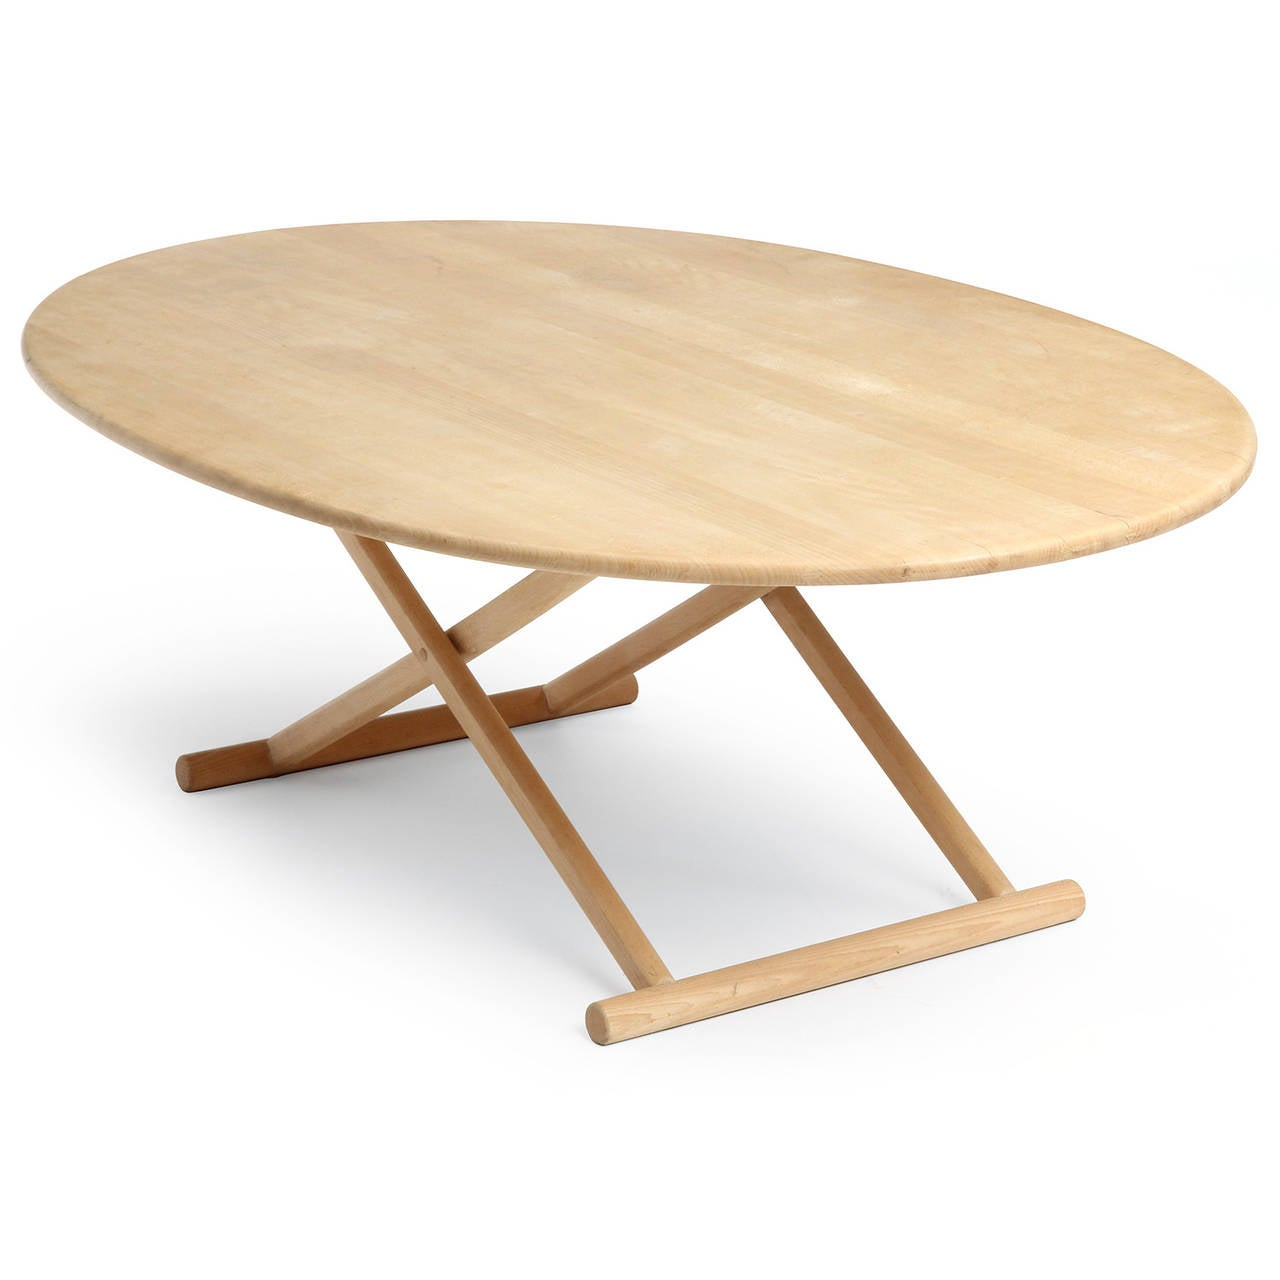 Oval Low Table In Good Condition For Sale In New York, NY